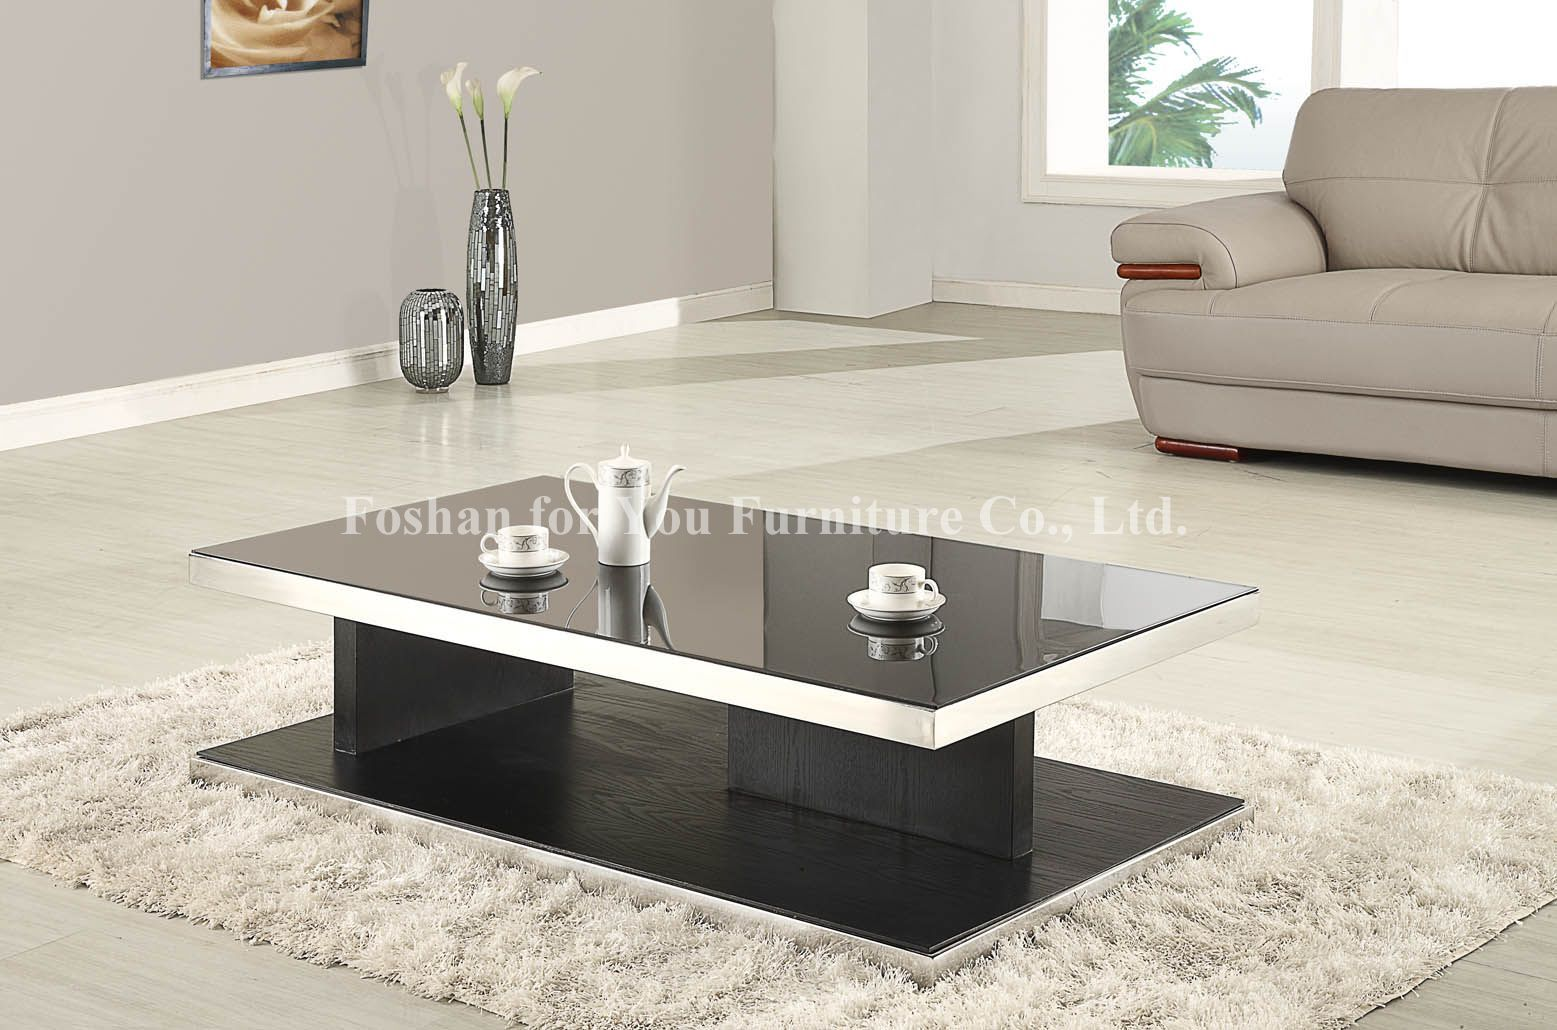 center table design for living room ideas decor square designs drawing google search